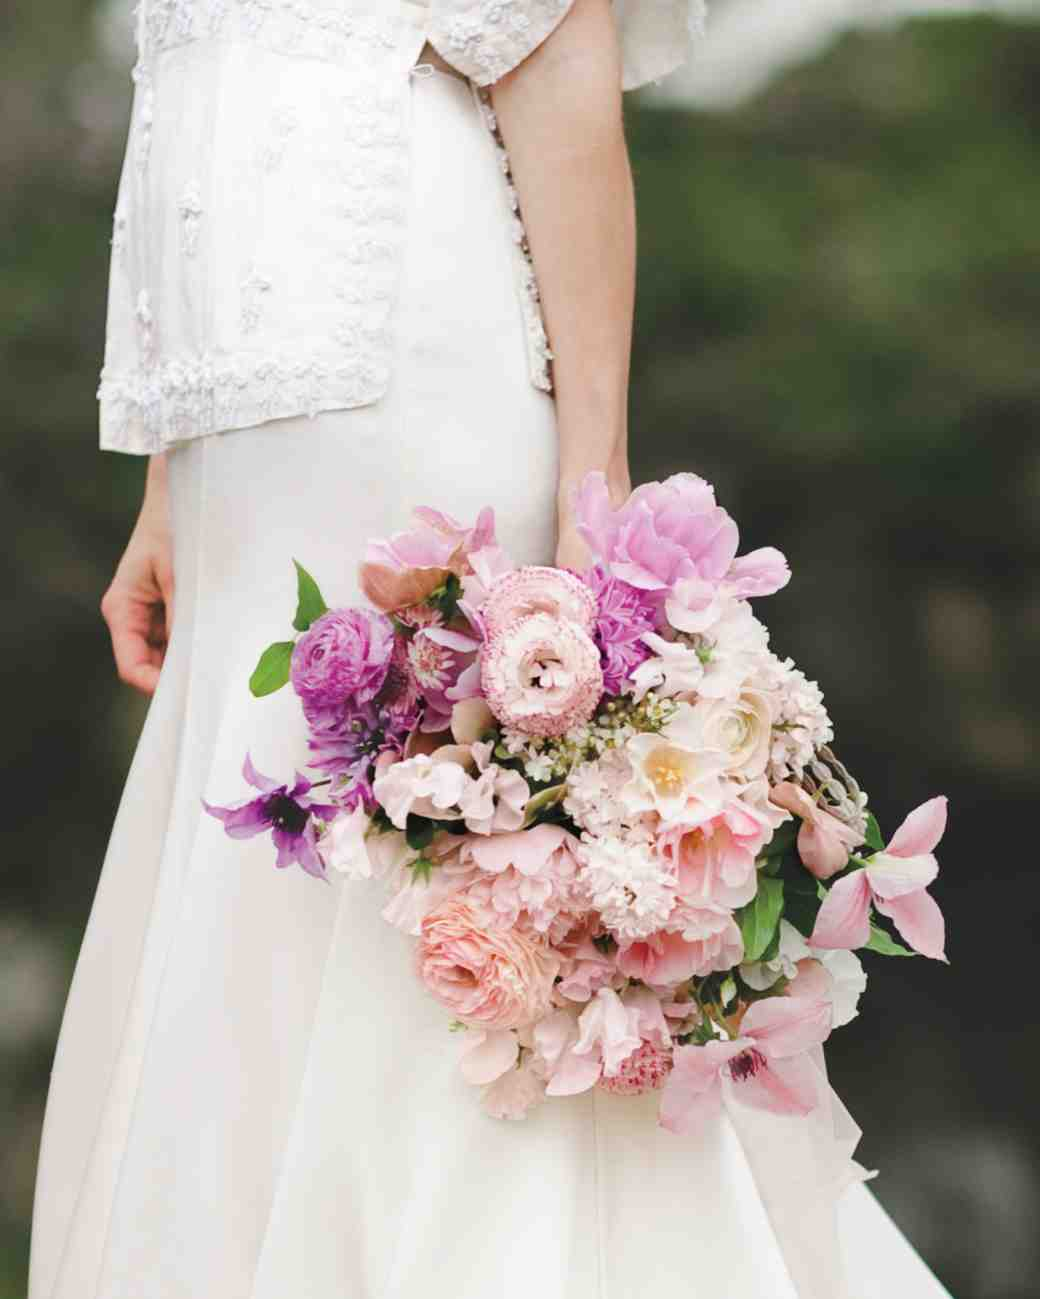 bouquet-weddinggown-winn-bowman-thenichols-263-mwds110732_vert.jpg